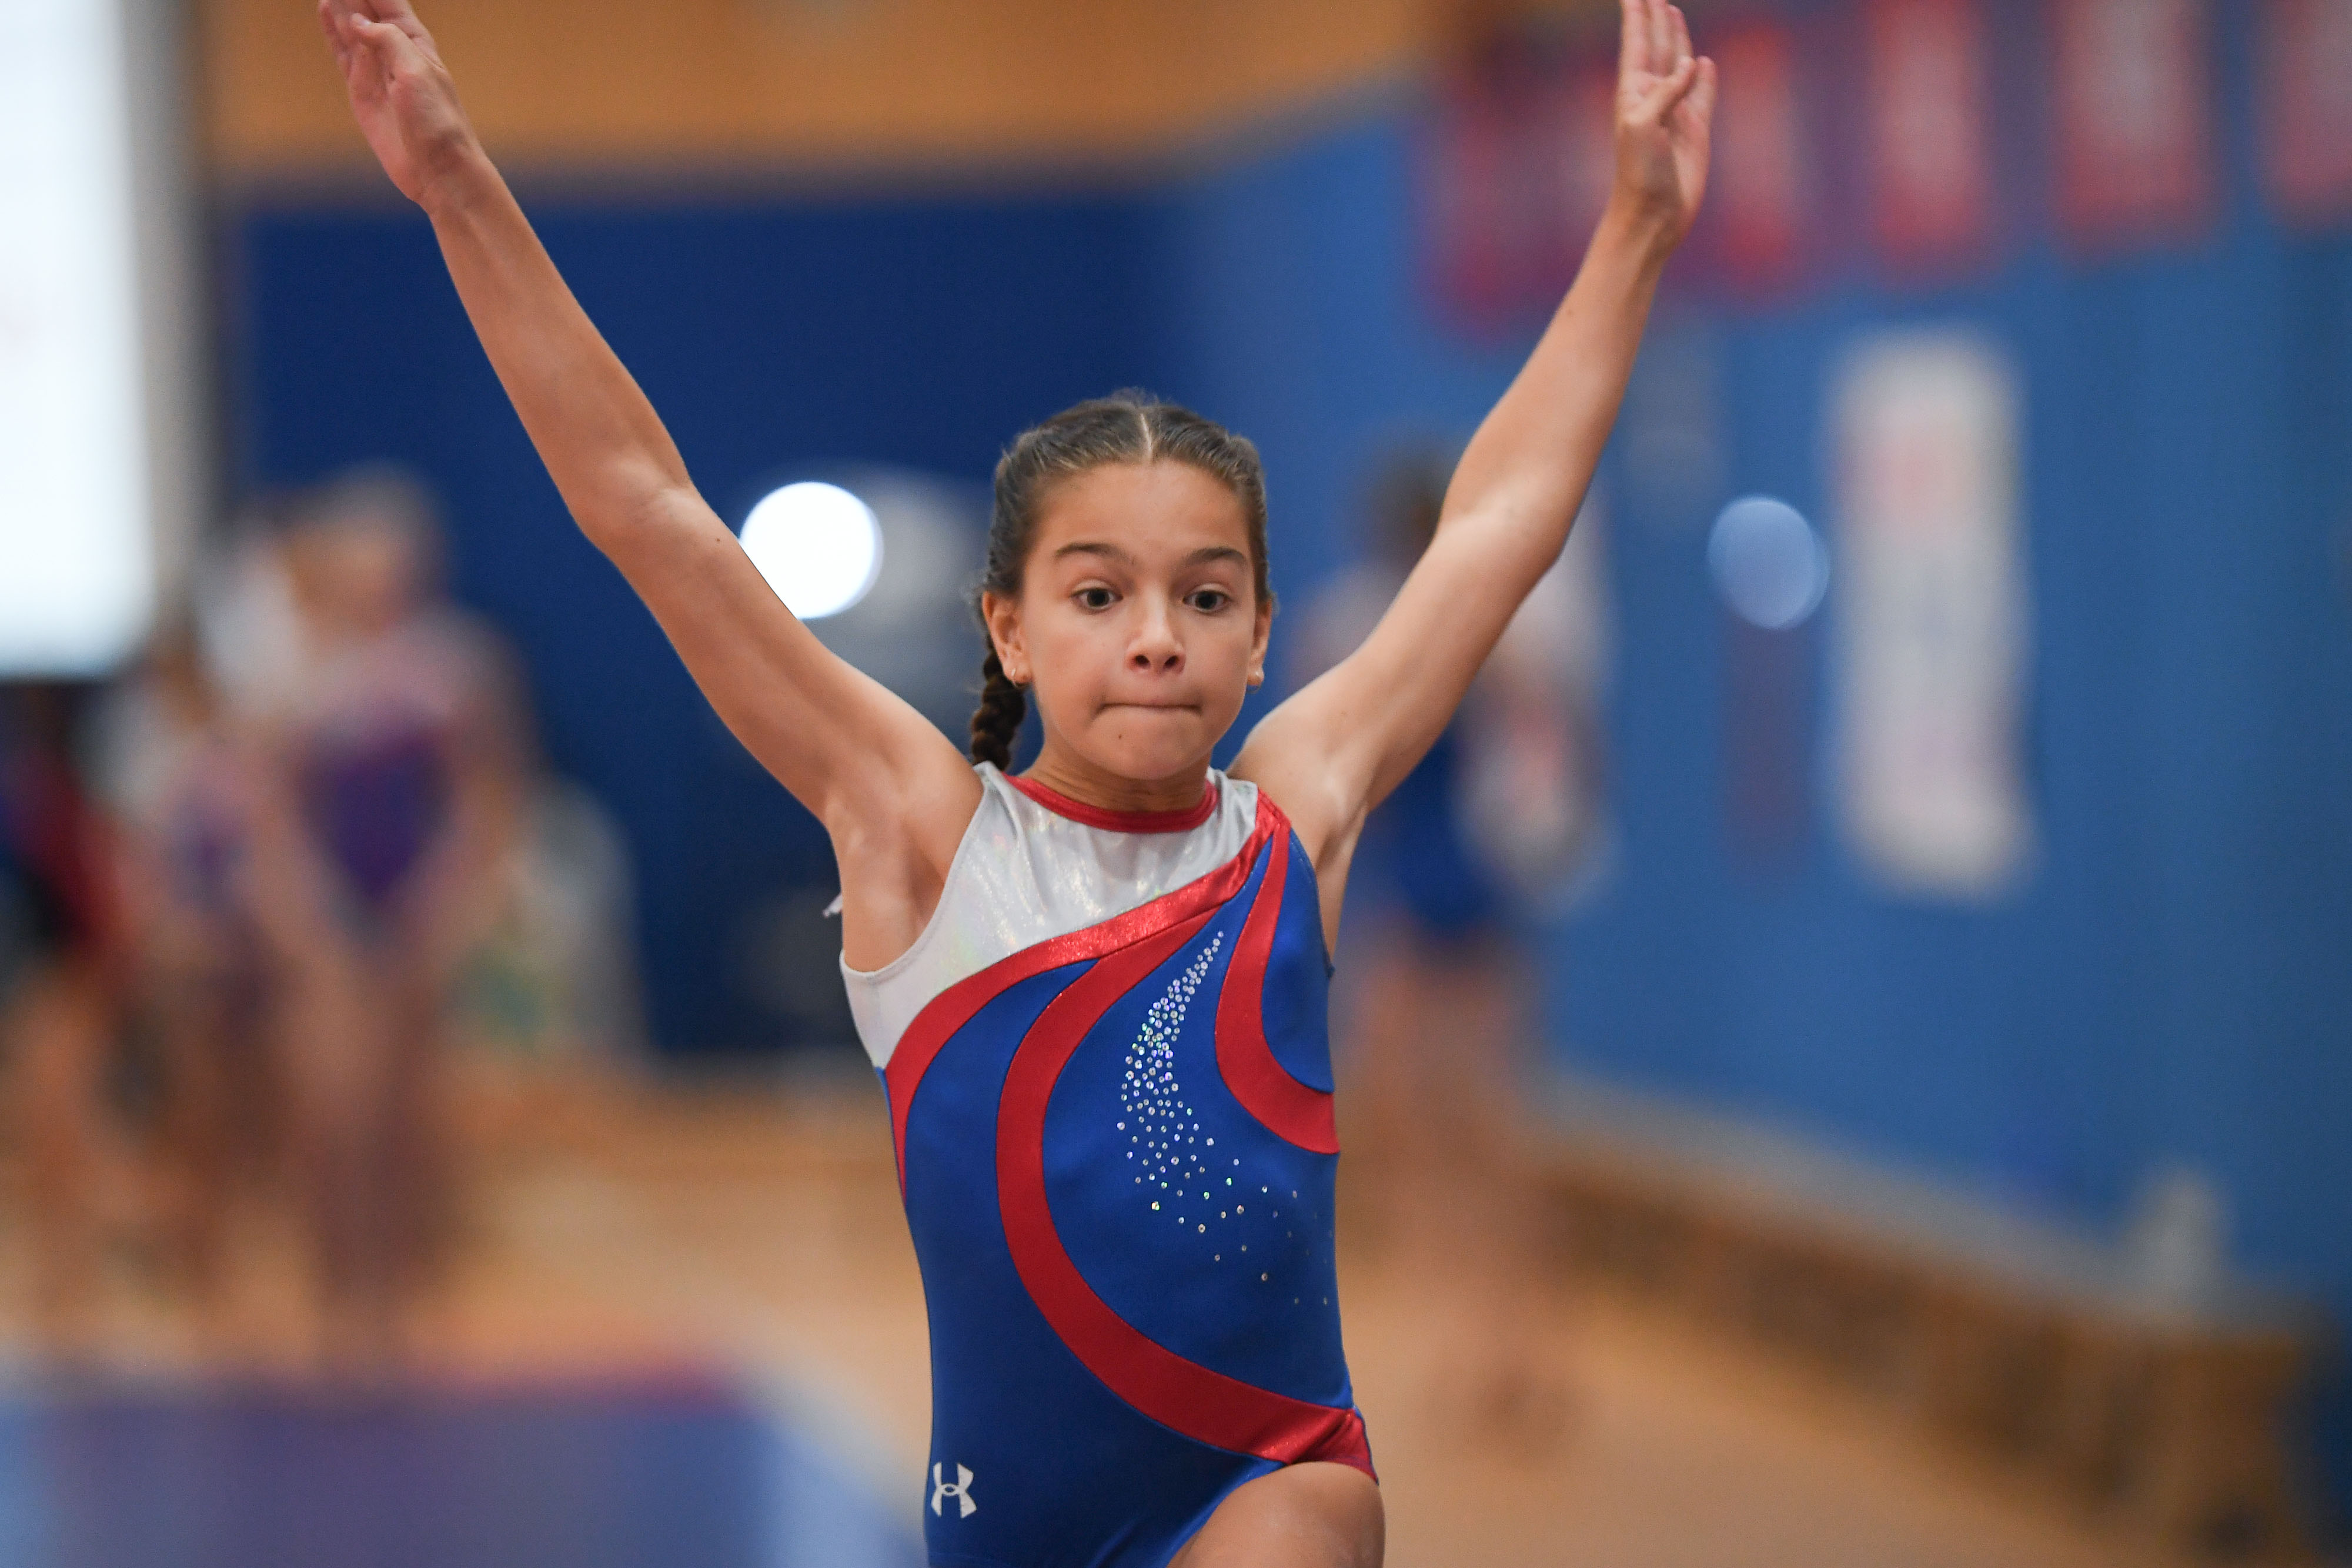 Extra Classes for Gymnasts Competing next weekend!